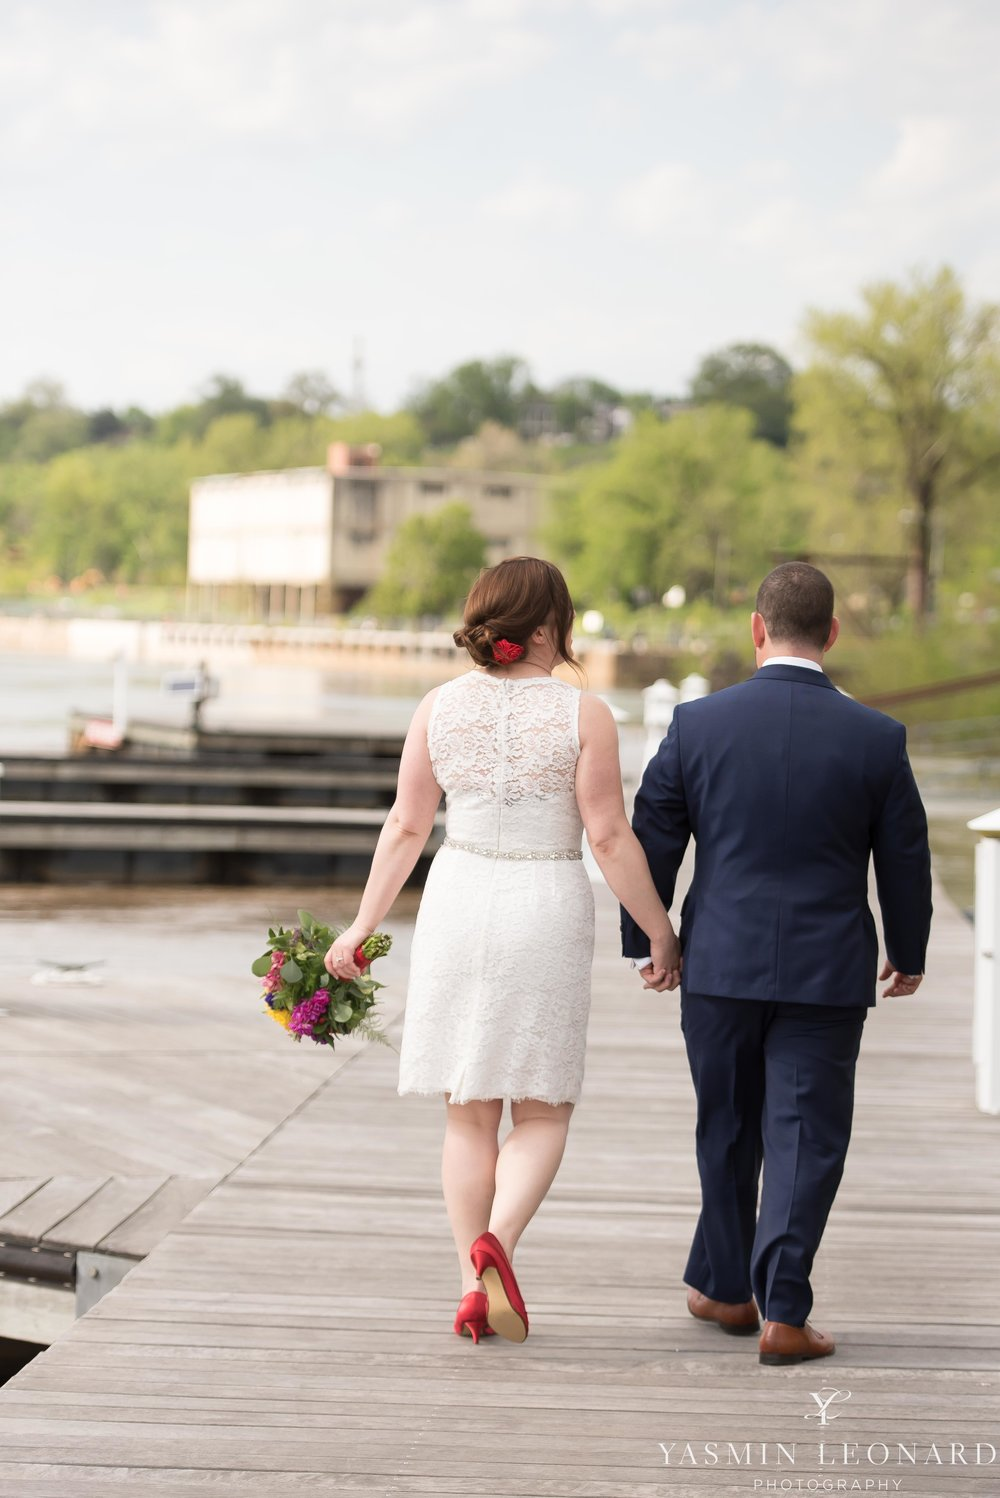 The Boathouse - The boathouse weddings - RVA Weddings - Richmond VA - Richmond VA Weddings - The Boathouse Weddings-27.jpg